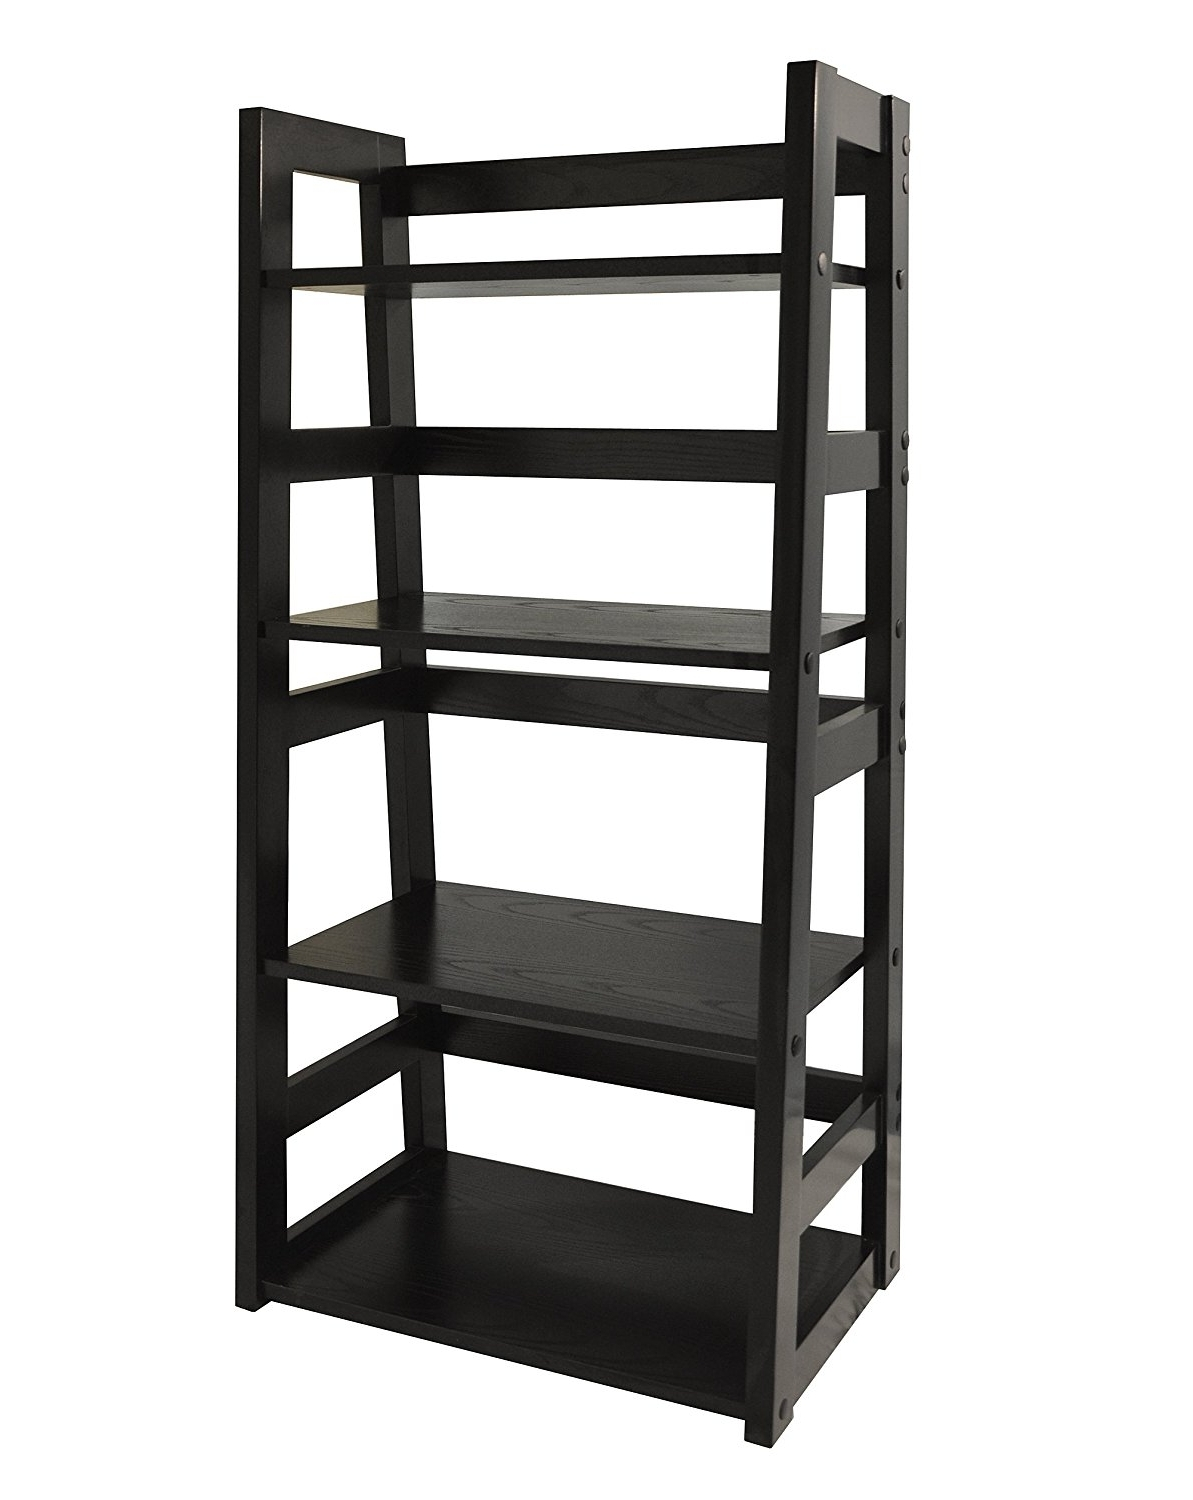 Amazon: Convenience Concepts Traditional 4 Tier Trestle Intended For Well Liked Black Bookcases (View 10 of 15)